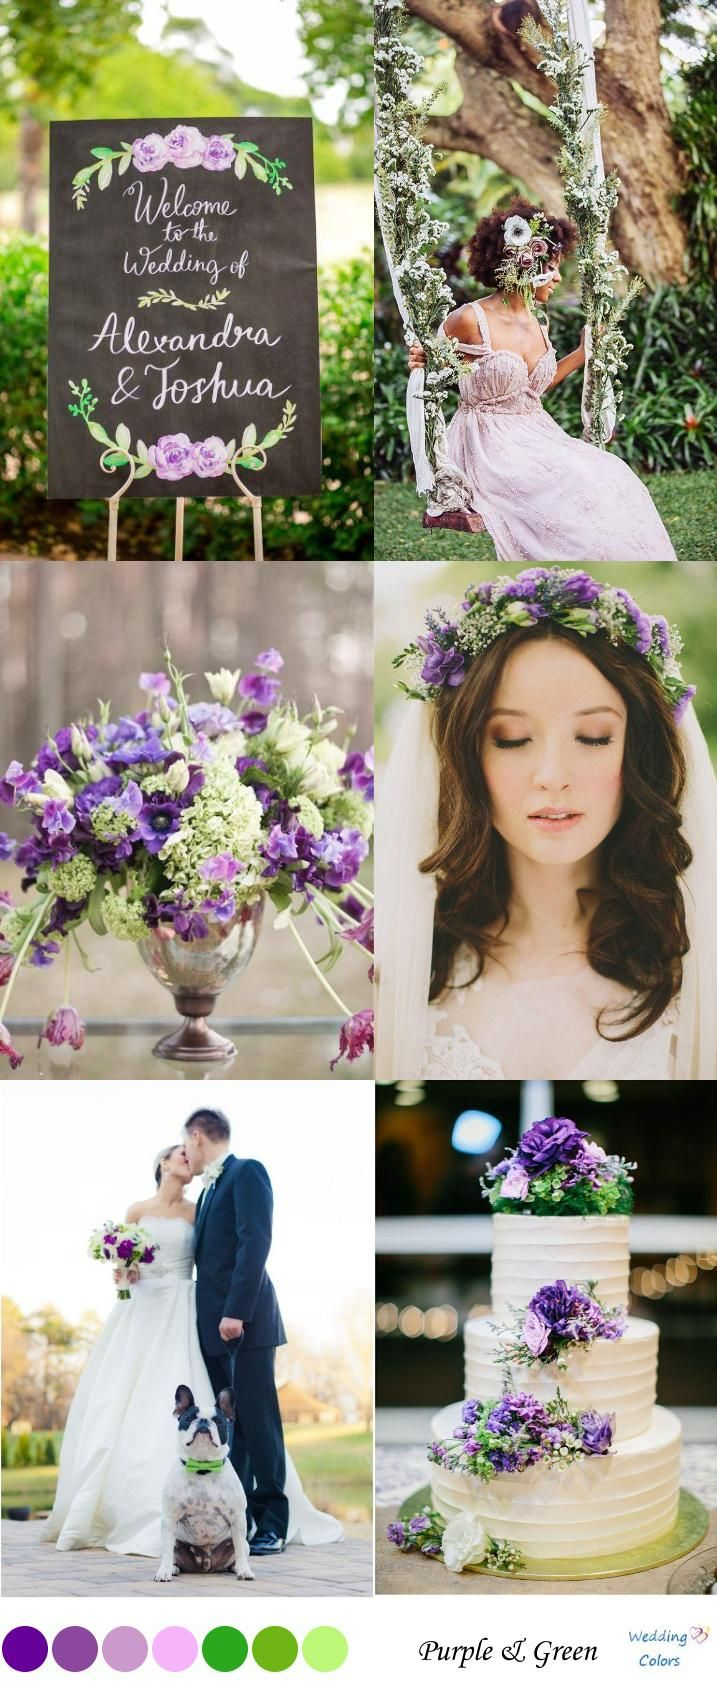 {Green & Purple} Wedding Palette